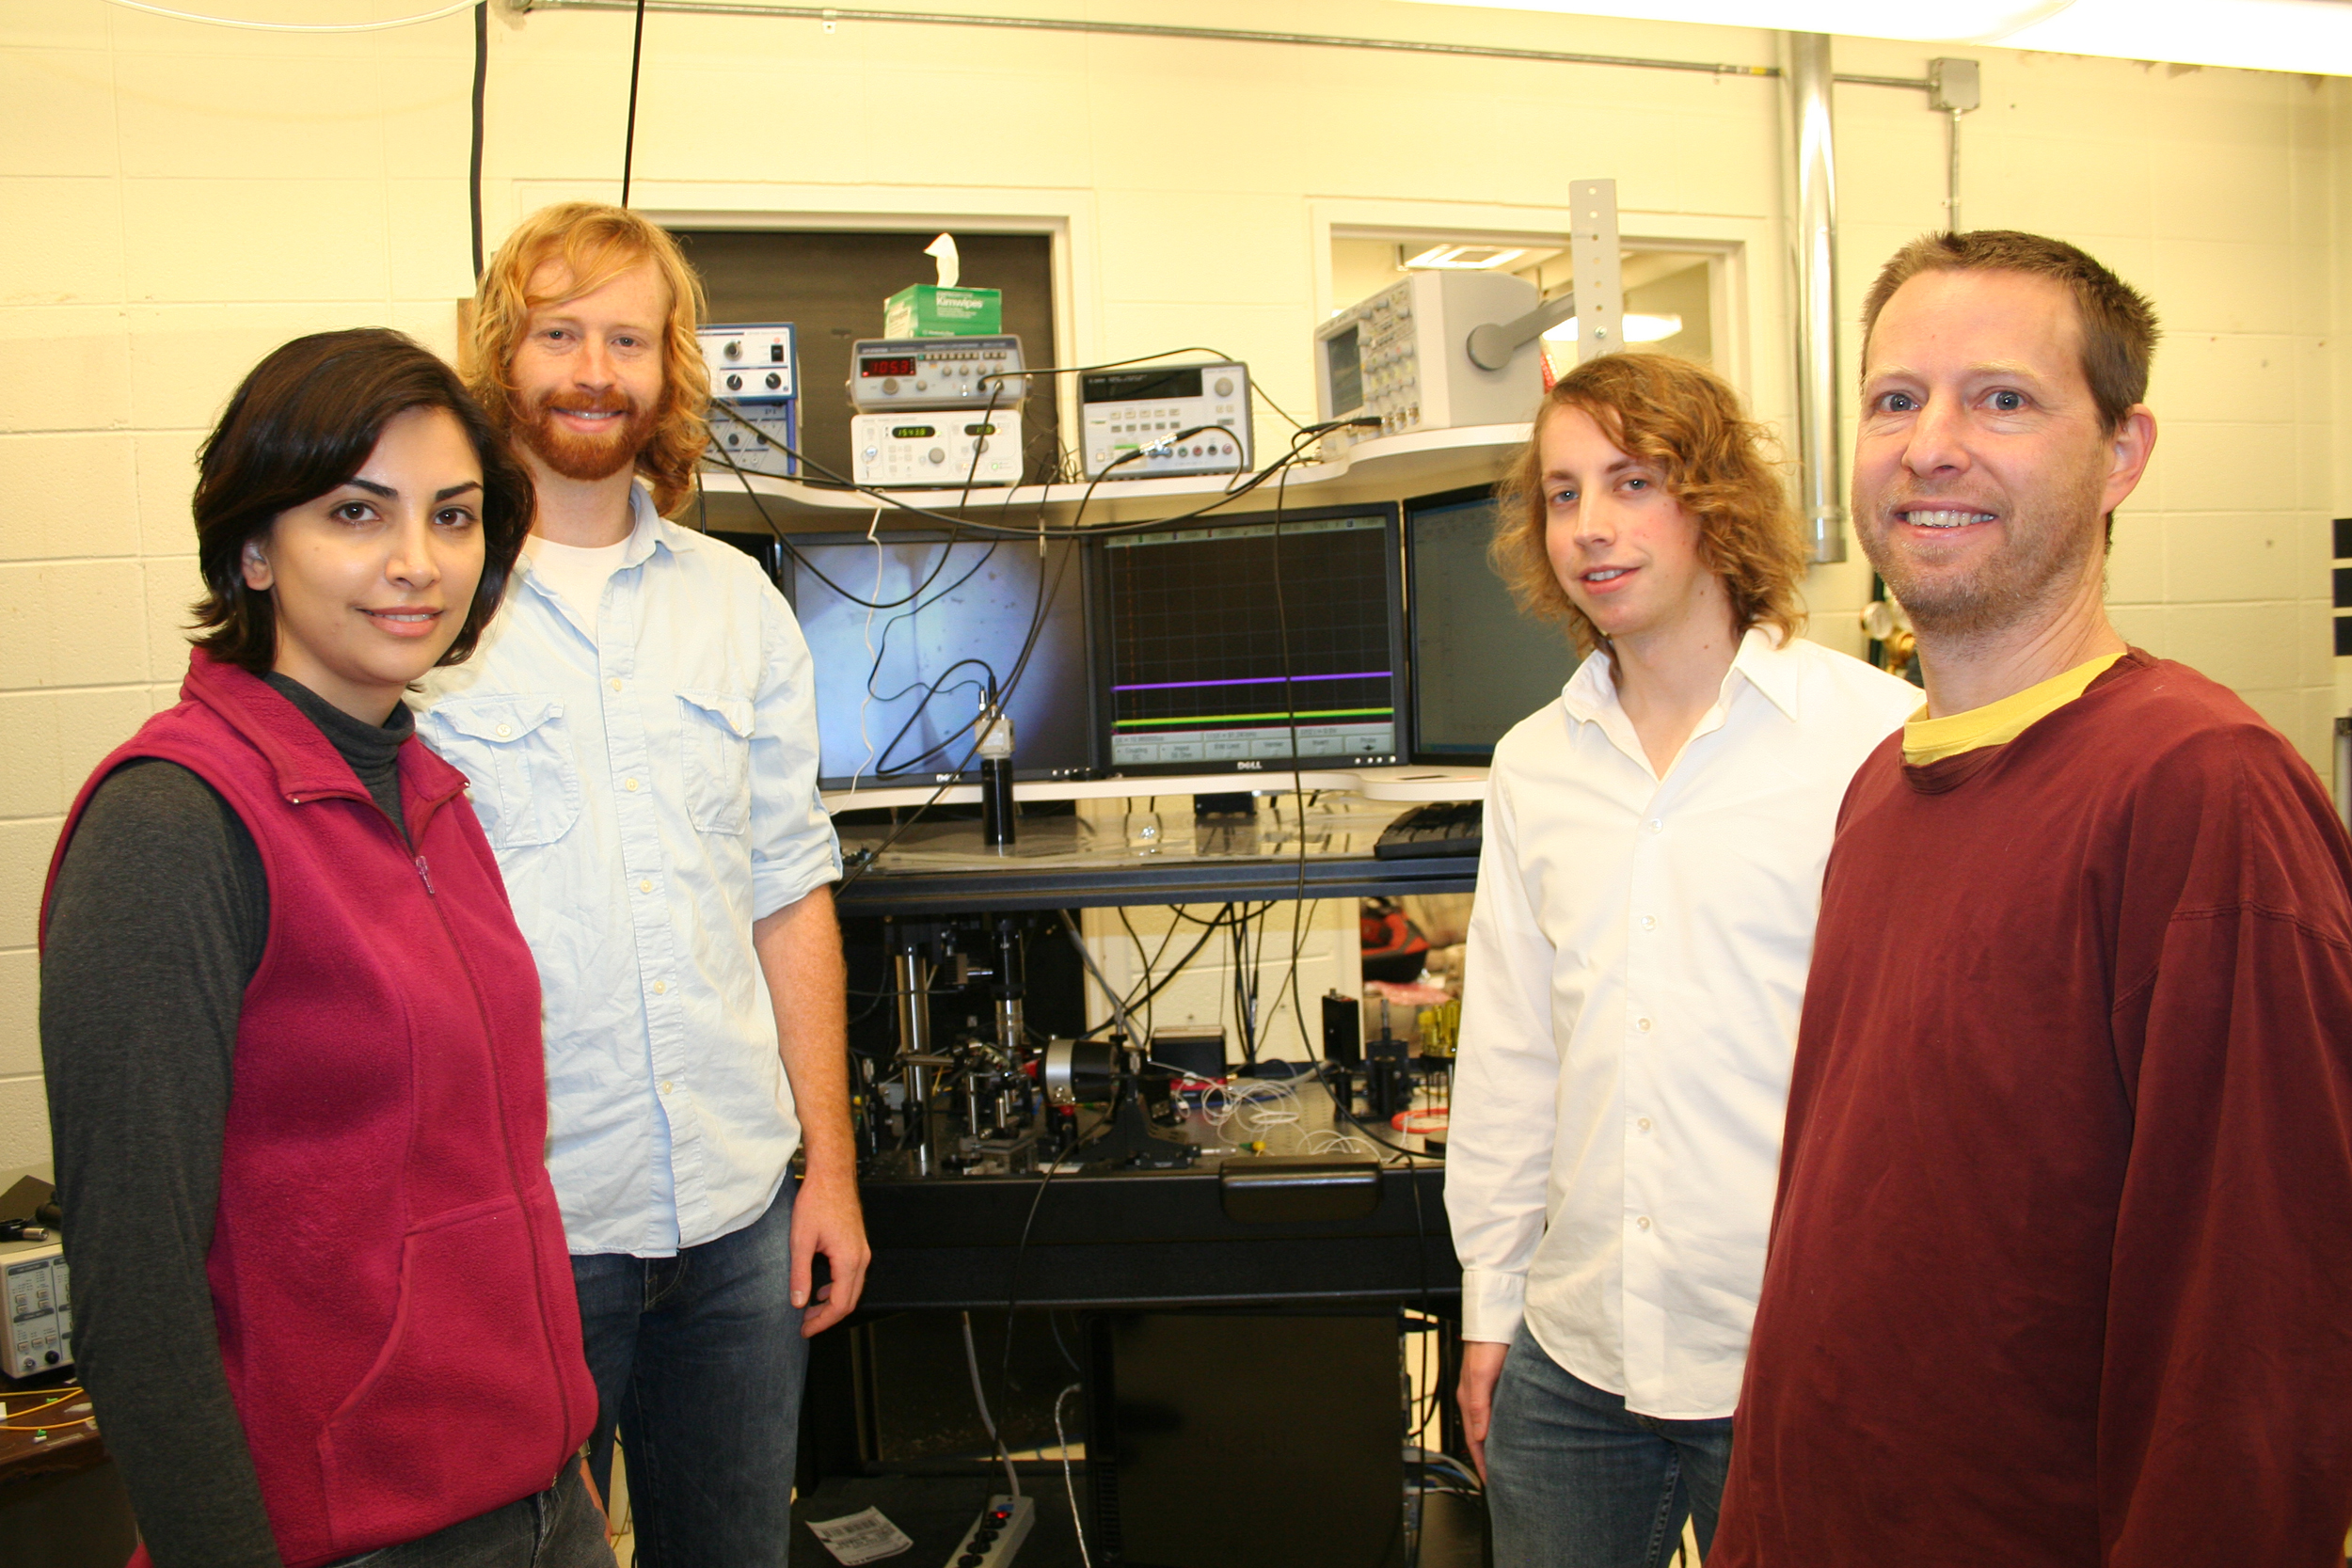 Electrical engineering and computer science researchers assistant professor Mona Jarrahi, doctoral students Jeremy Moore and Matthew Tomes and assistant professor Tal Carmon. Photo courtesy of Mona Jarrahi